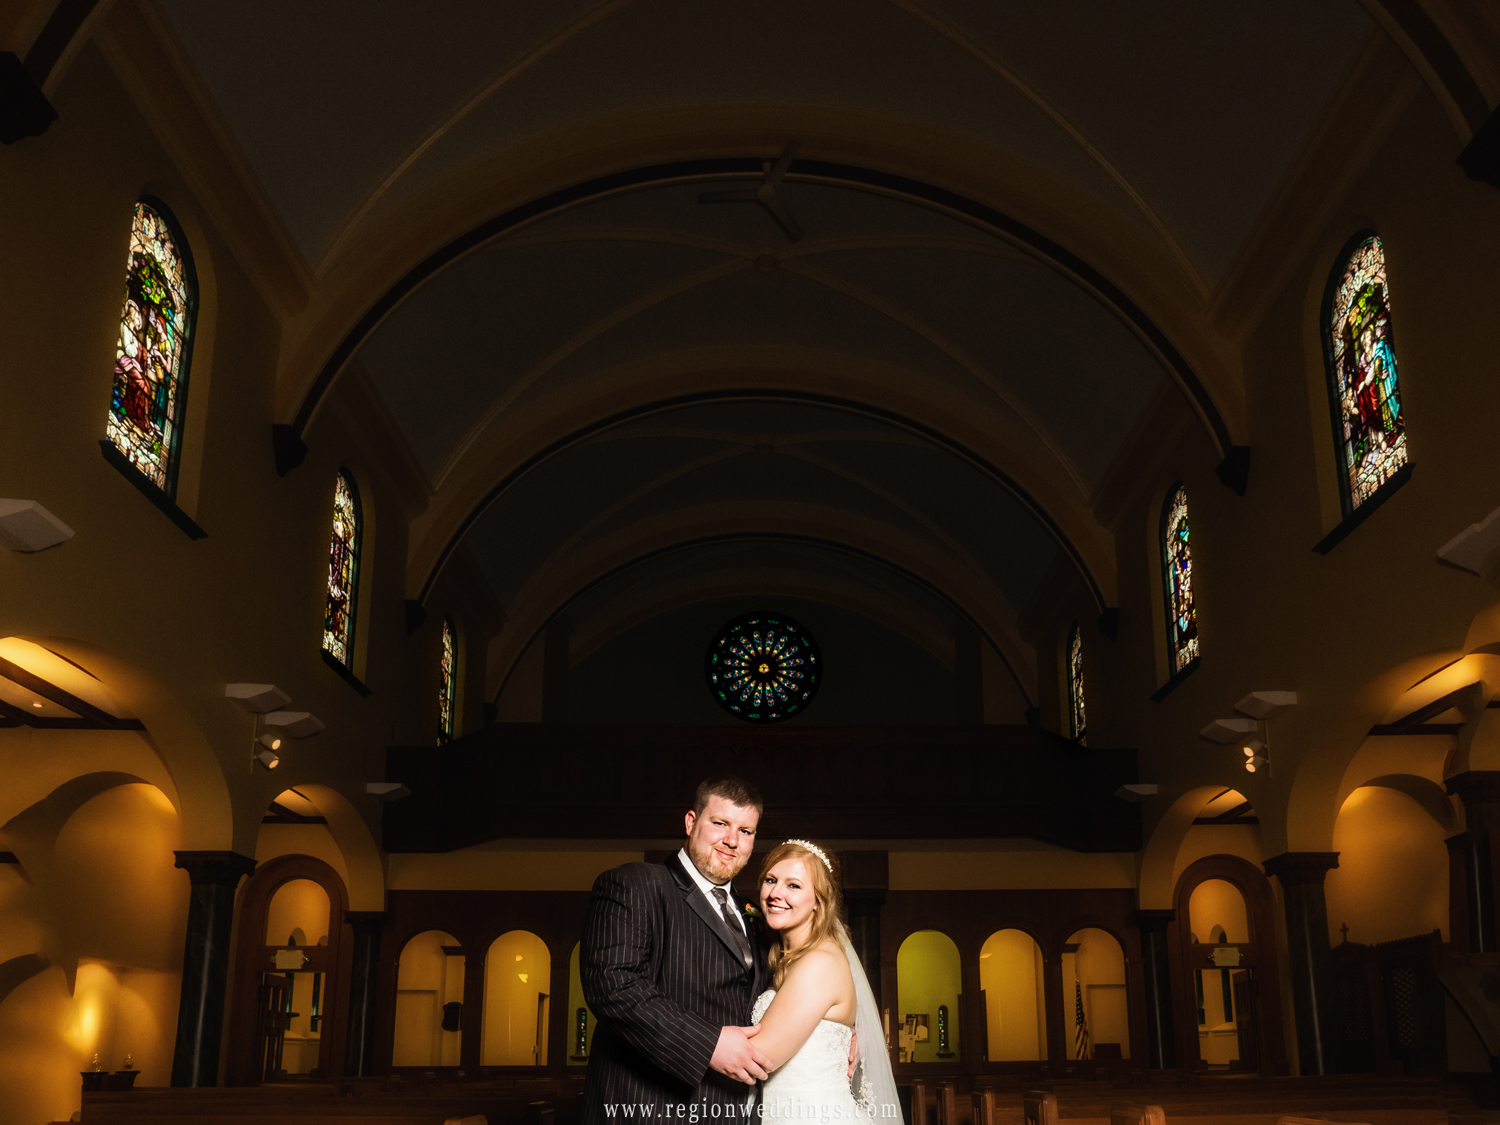 Bride and groom at St. Peter's Catholic Church in Laporte, Indiana.